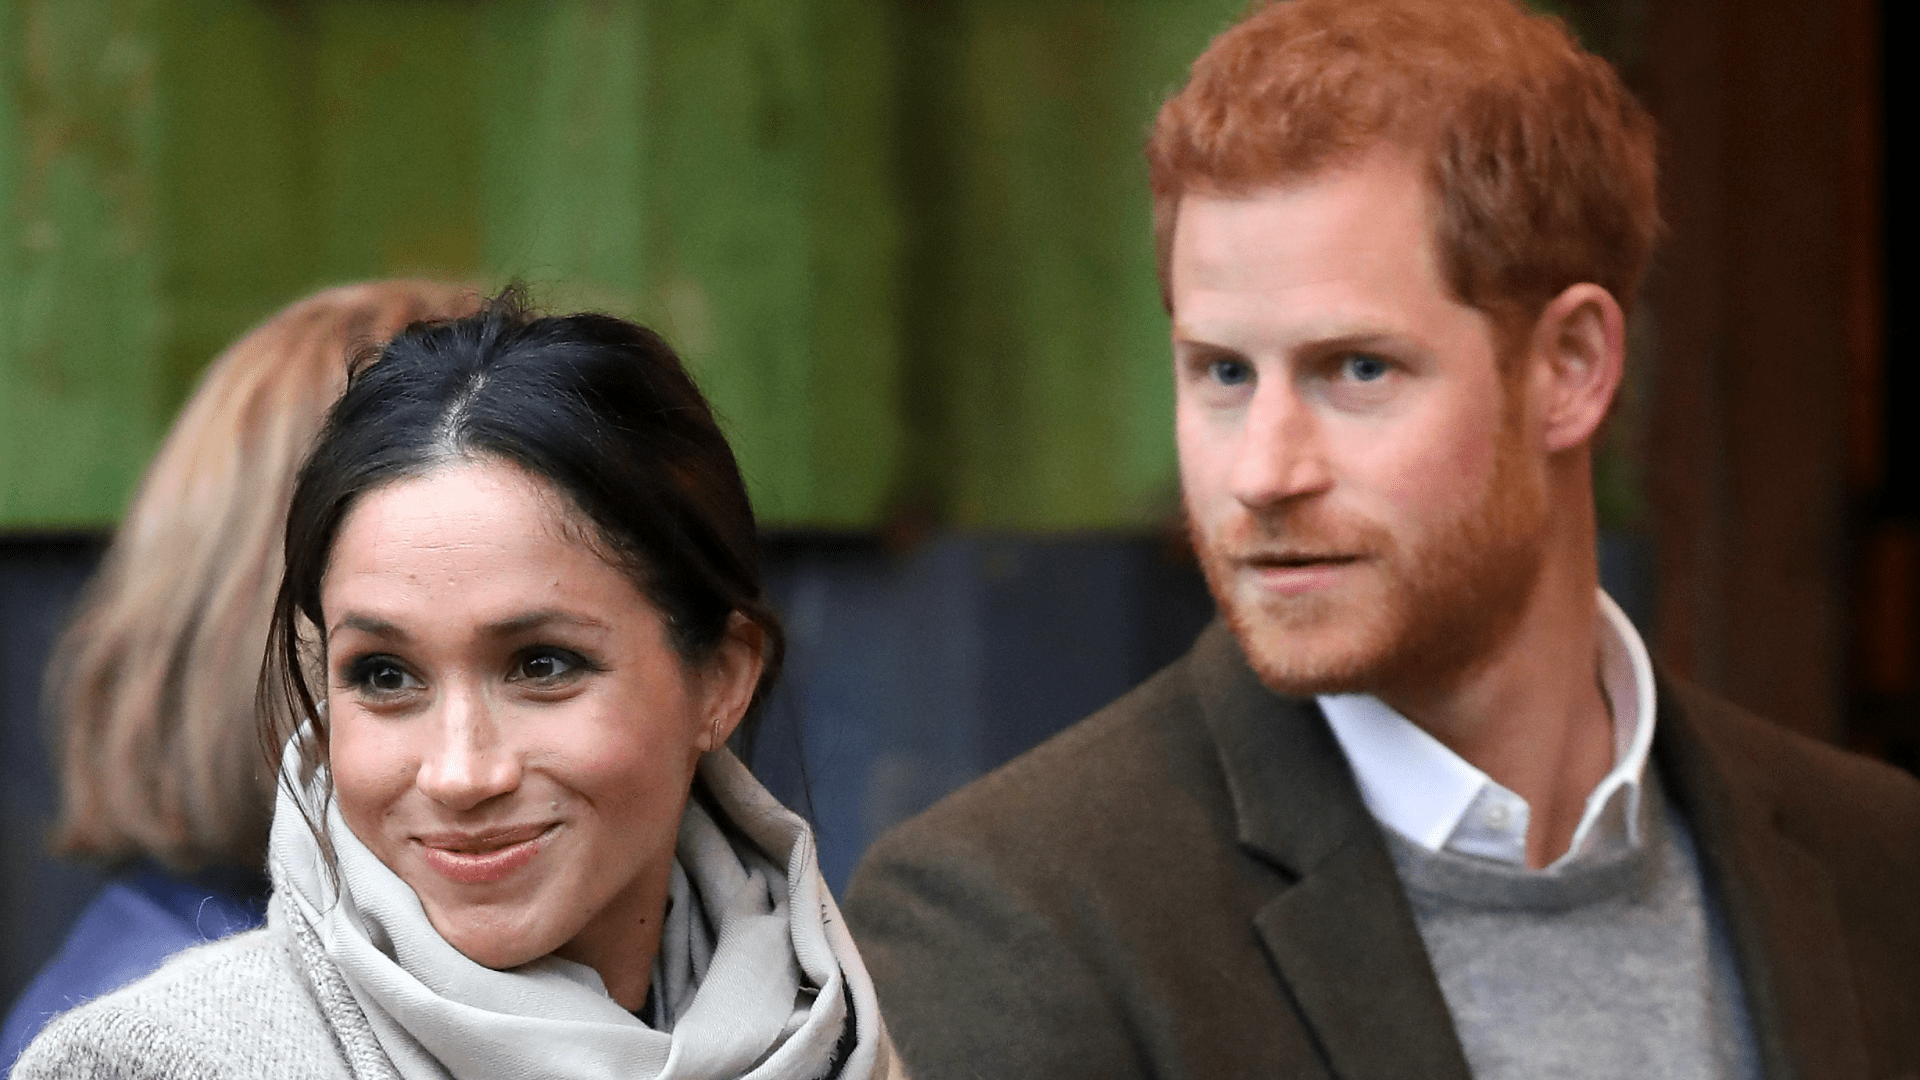 Meghan Markle and Prince Harrys wedding reported to cost a grand 45 million